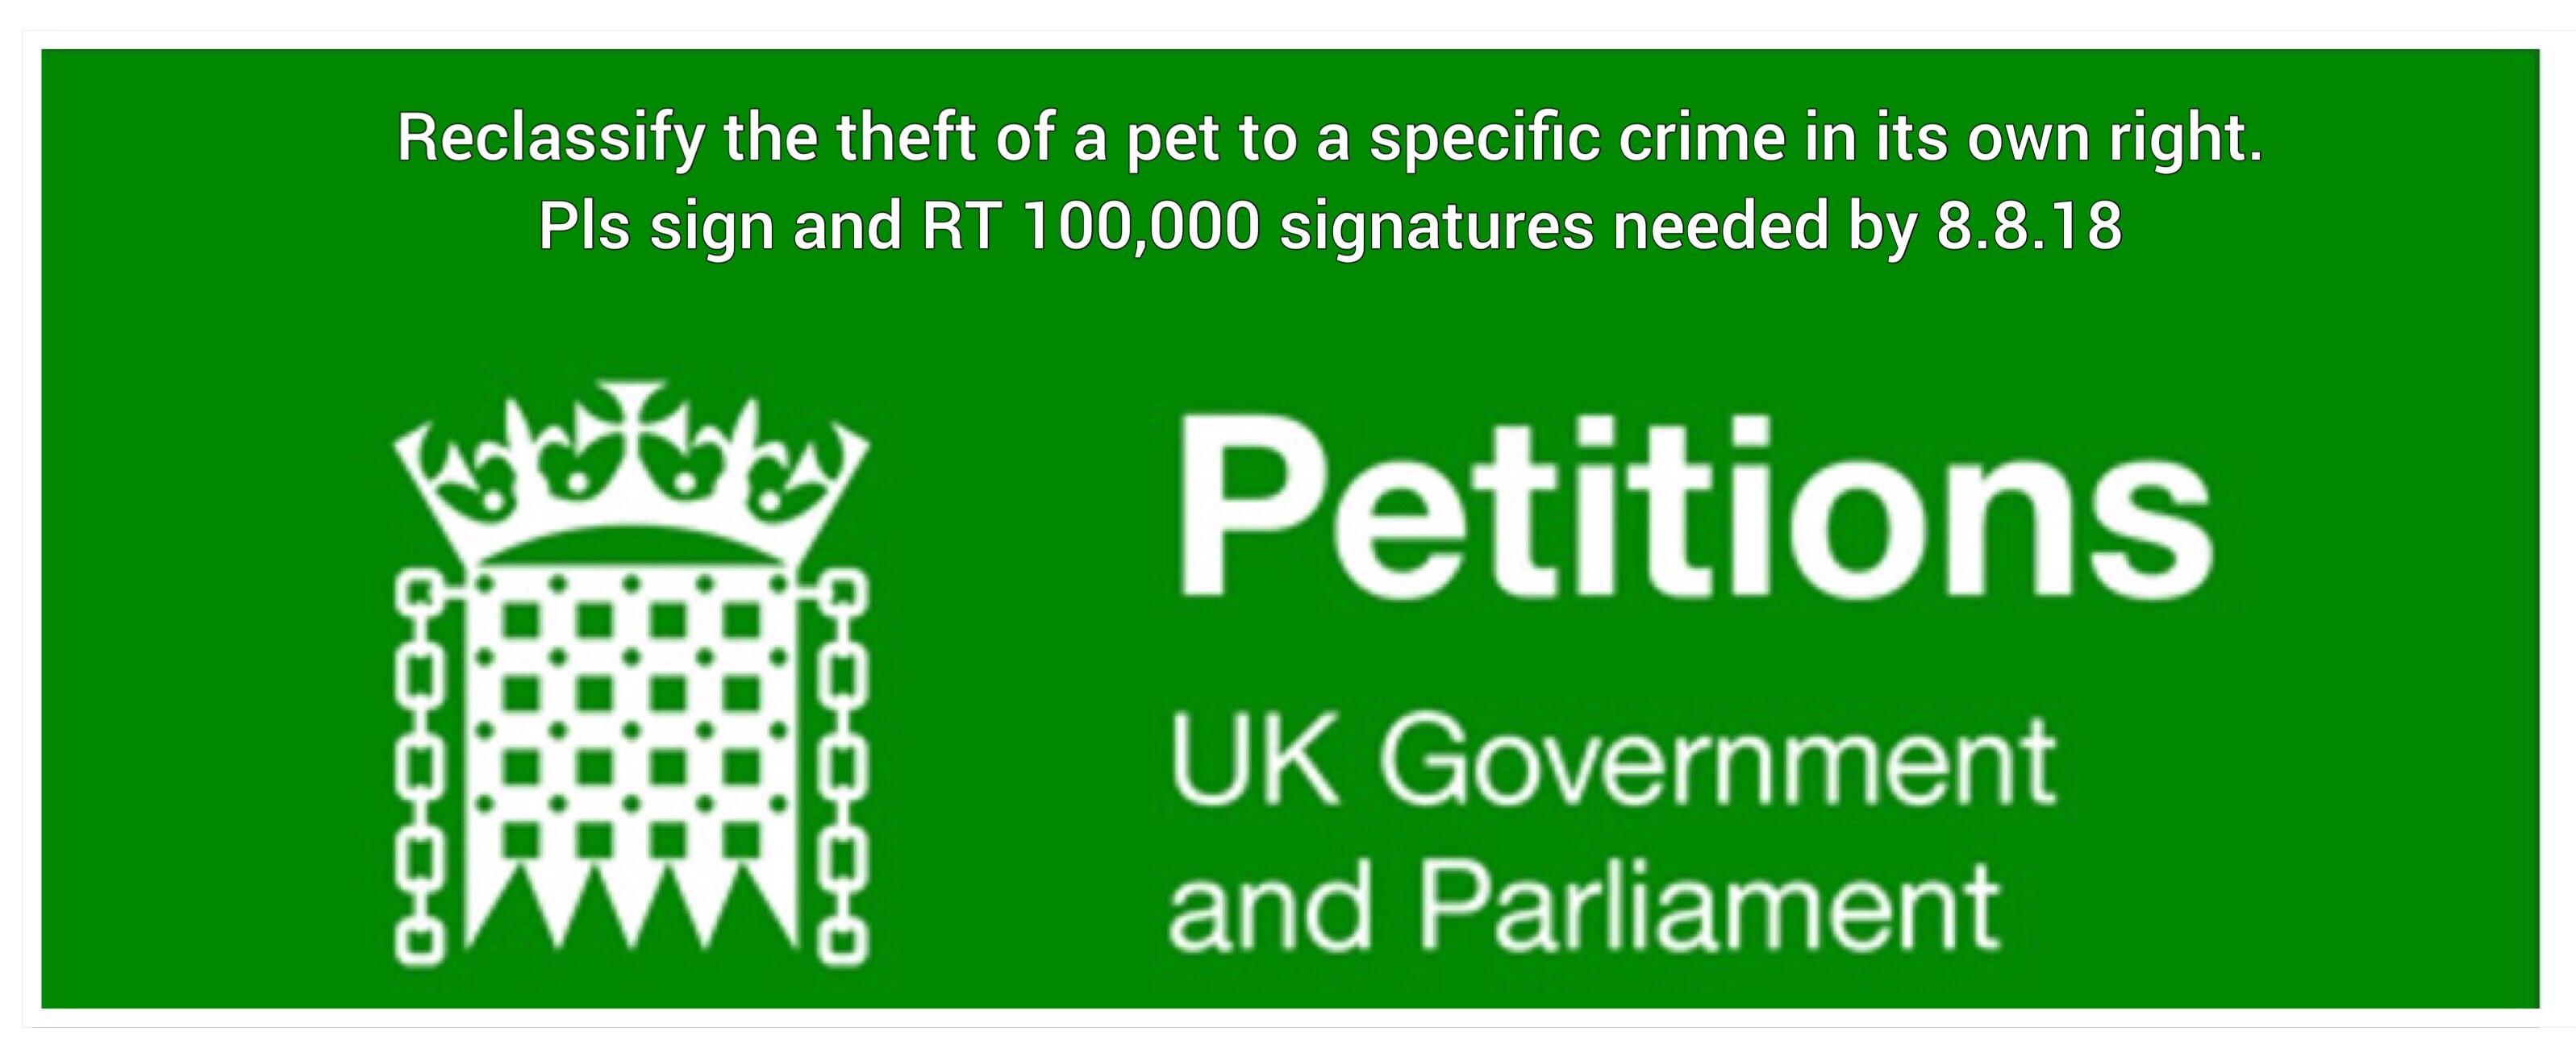 Please sign and support the #PetTheftPetition.